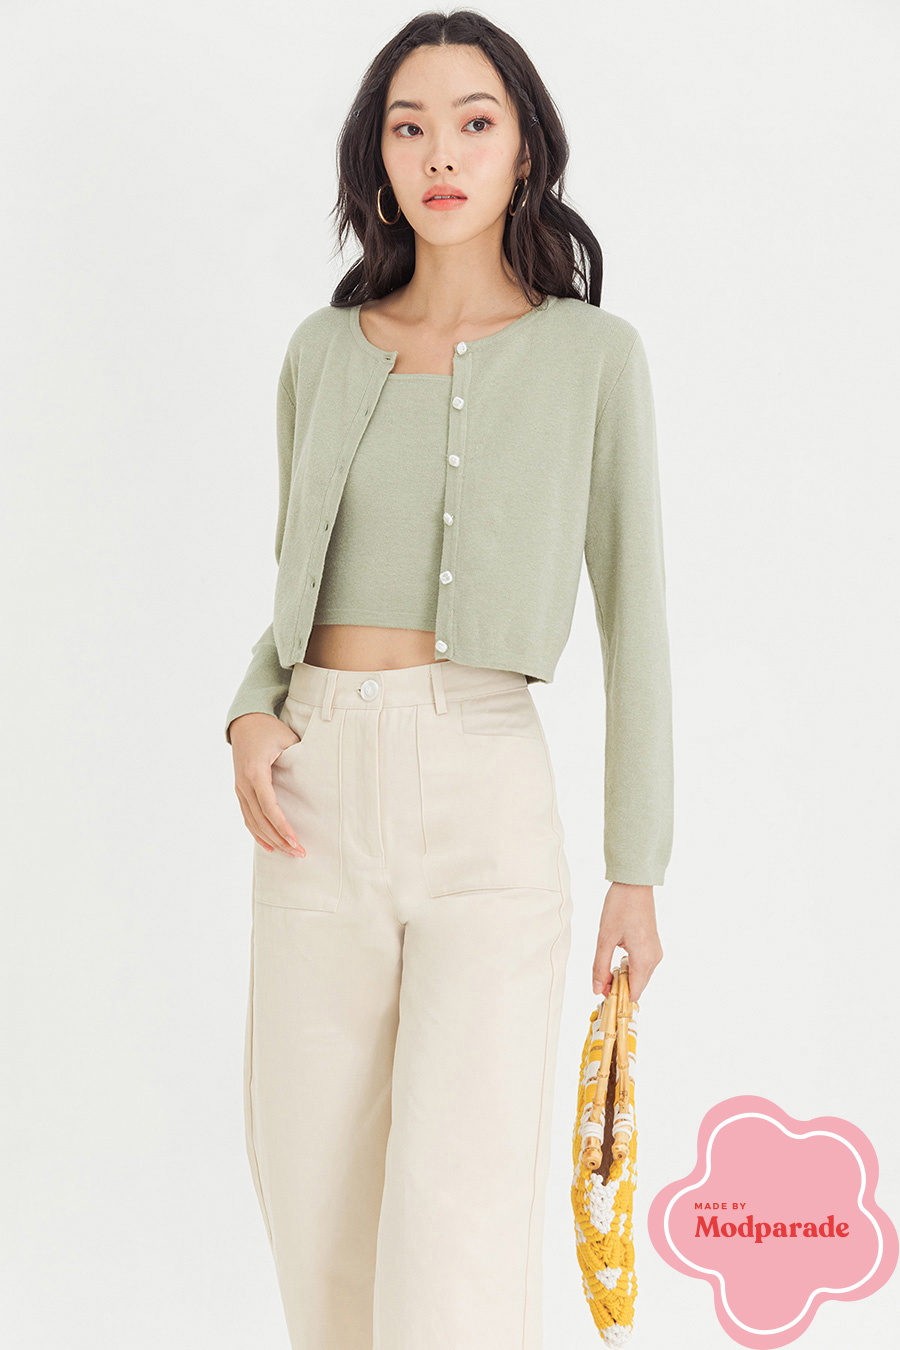 BLAQUE CARDIGAN - PEAR FIZZ [BY MODPARADE]